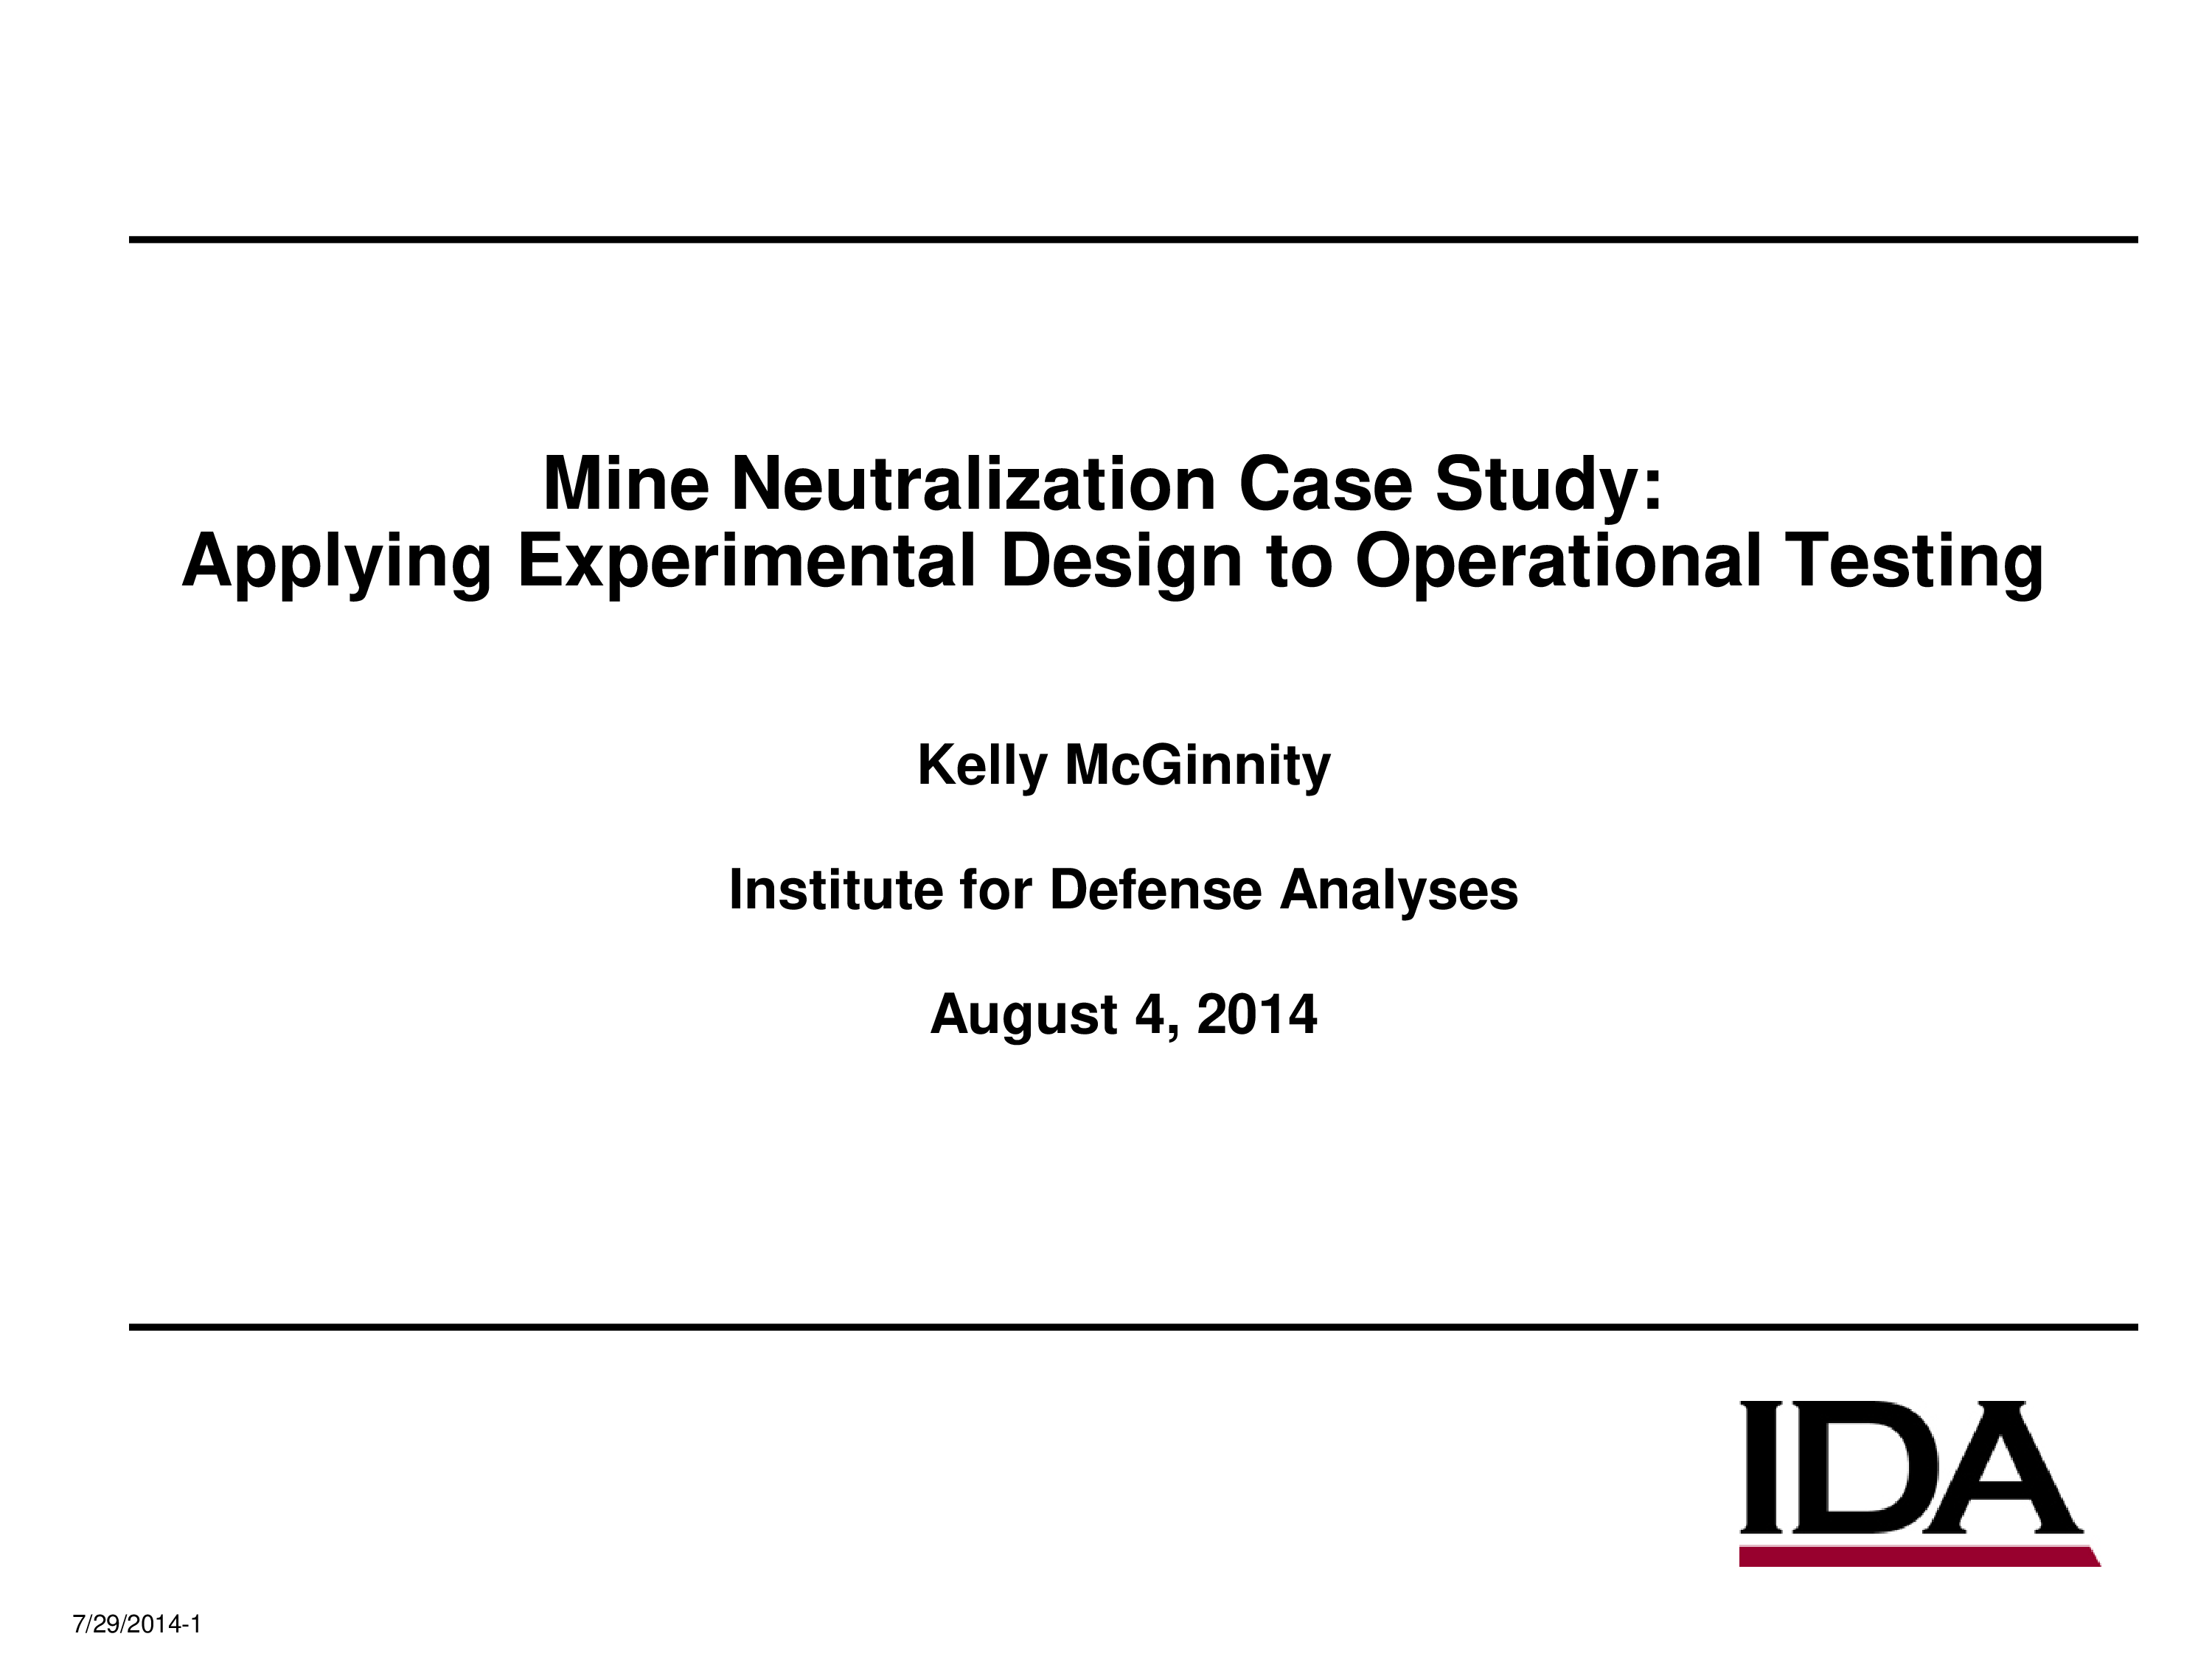 Mine Neutralization Case Study: Applying Experimental Design to Operational Testing